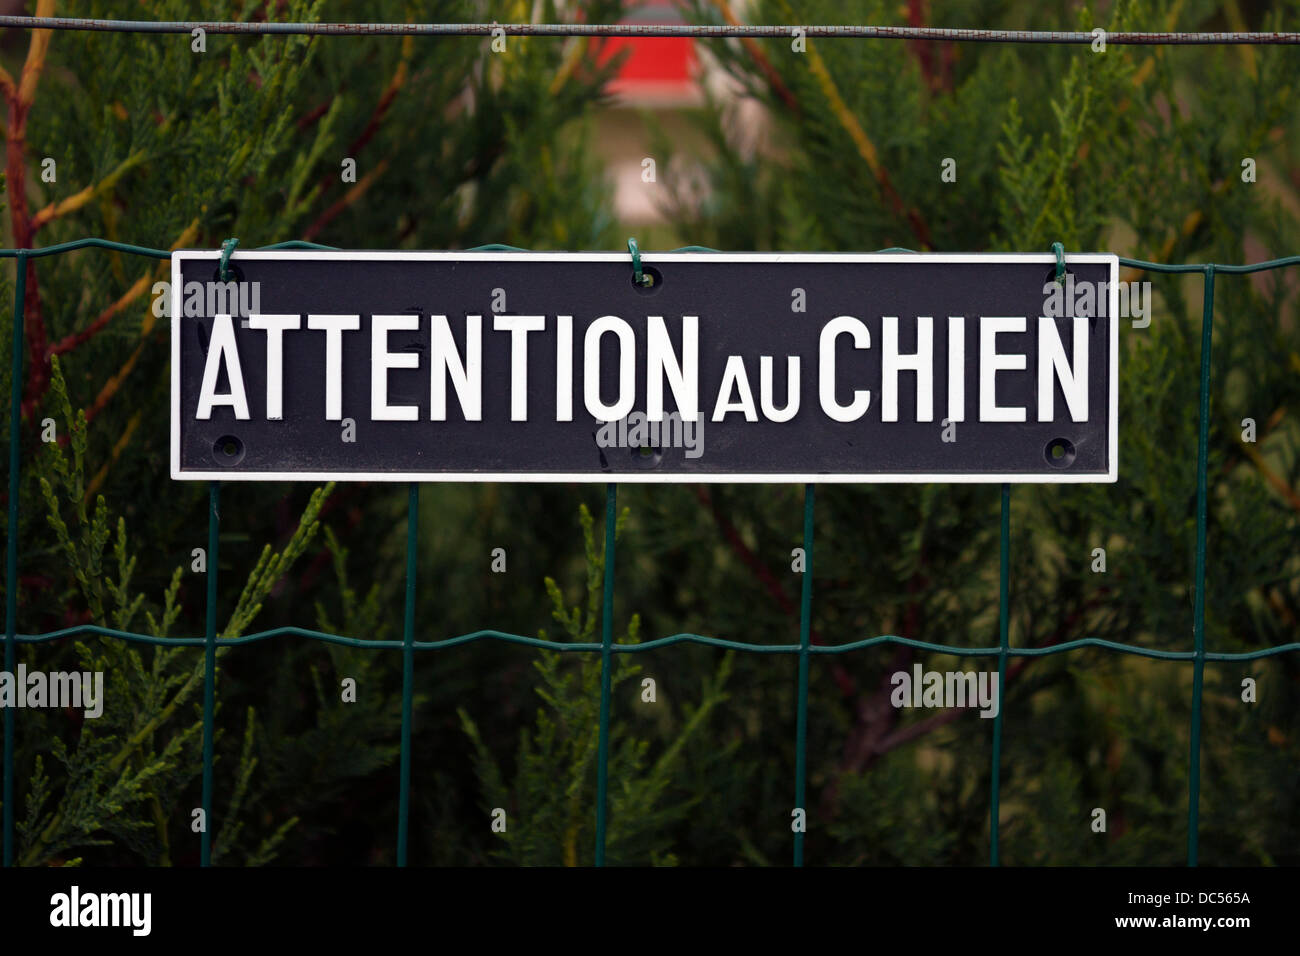 Attention au Chien sign - Stock Image